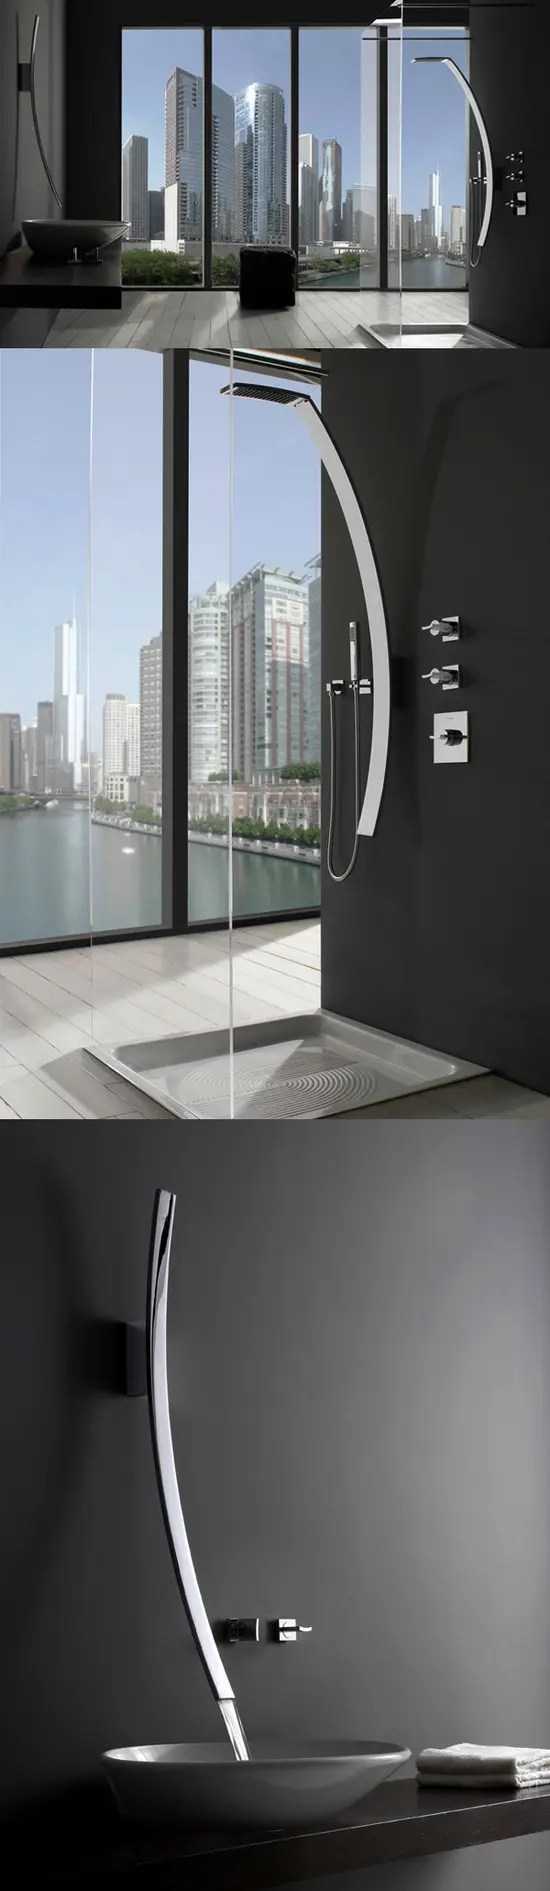 Mens Bathroom Decor 97 Stylish Truly Masculine Bathroom Décor Ideas Digsdigs